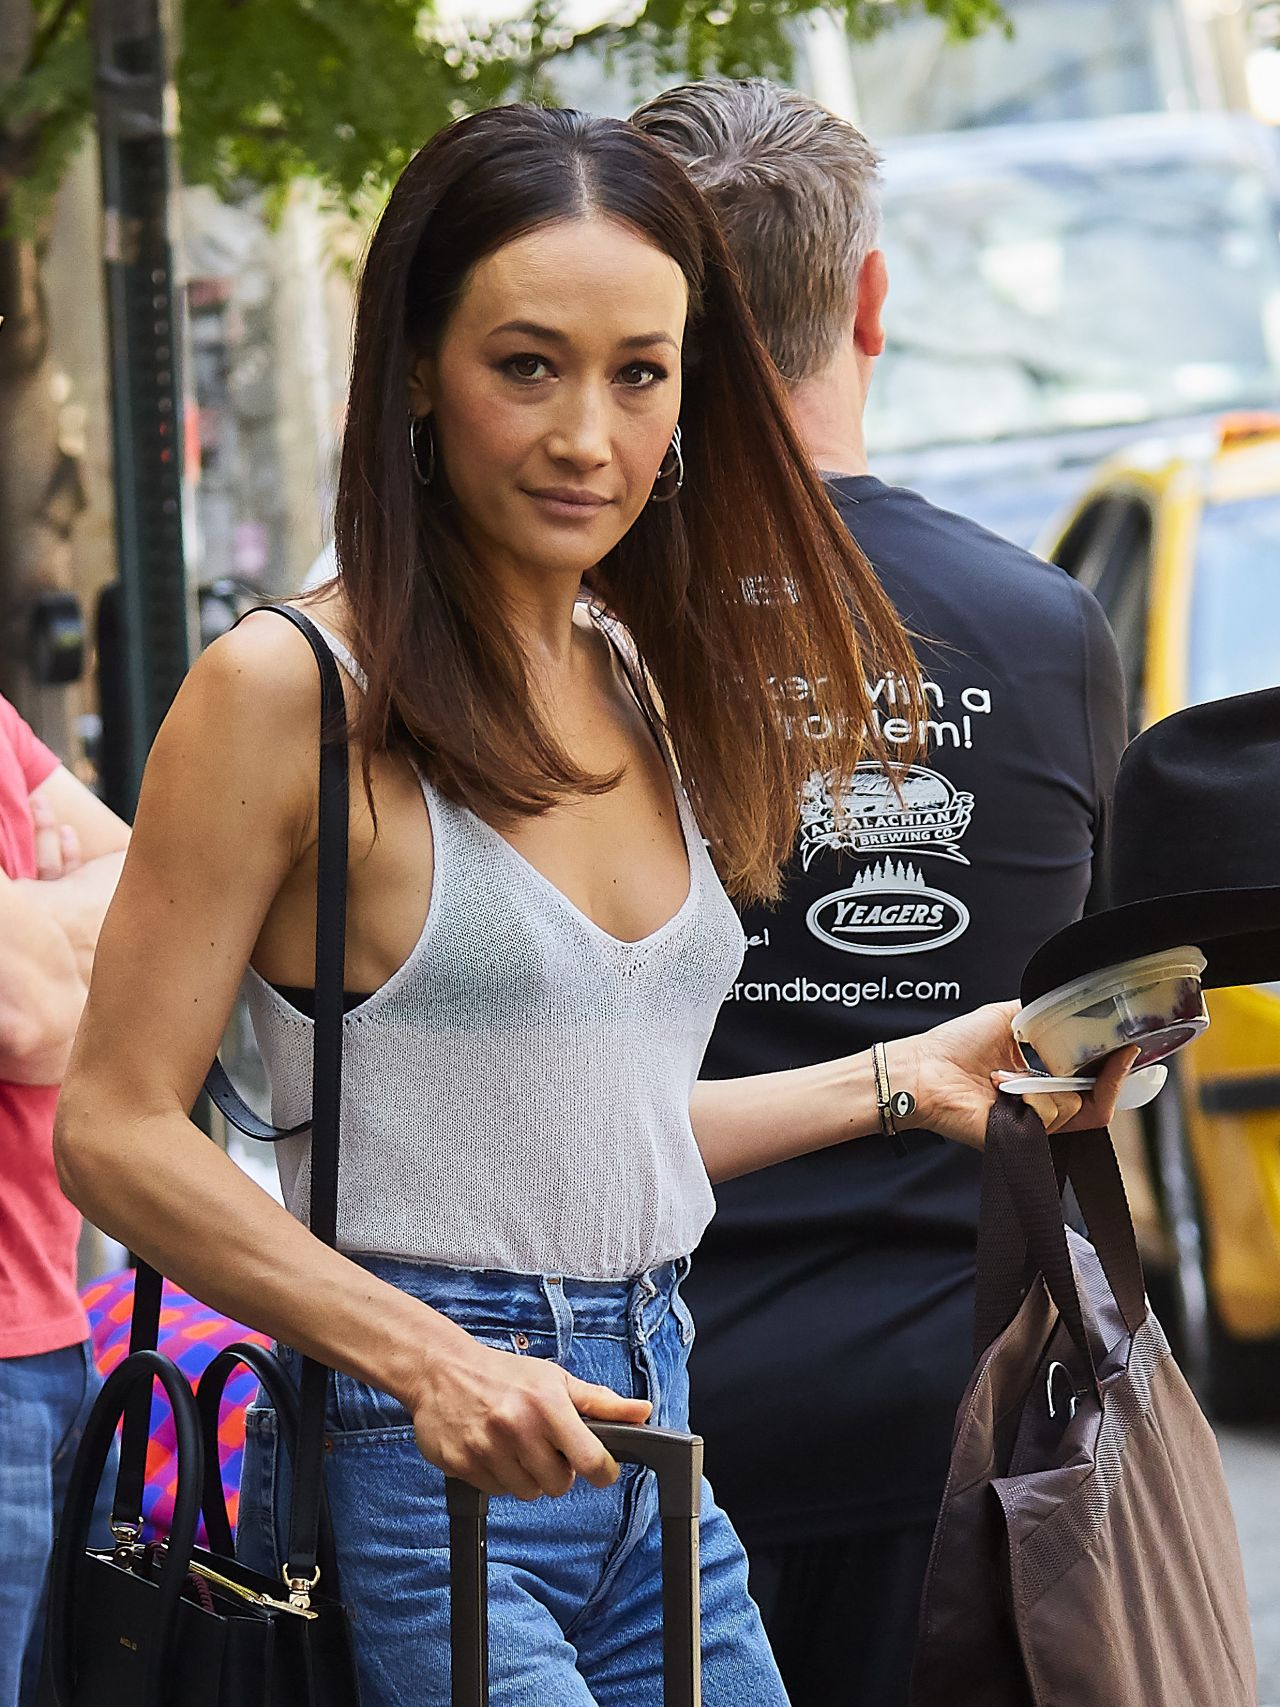 Maggie Q Leaving Her Hotel In New York 06 09 2017